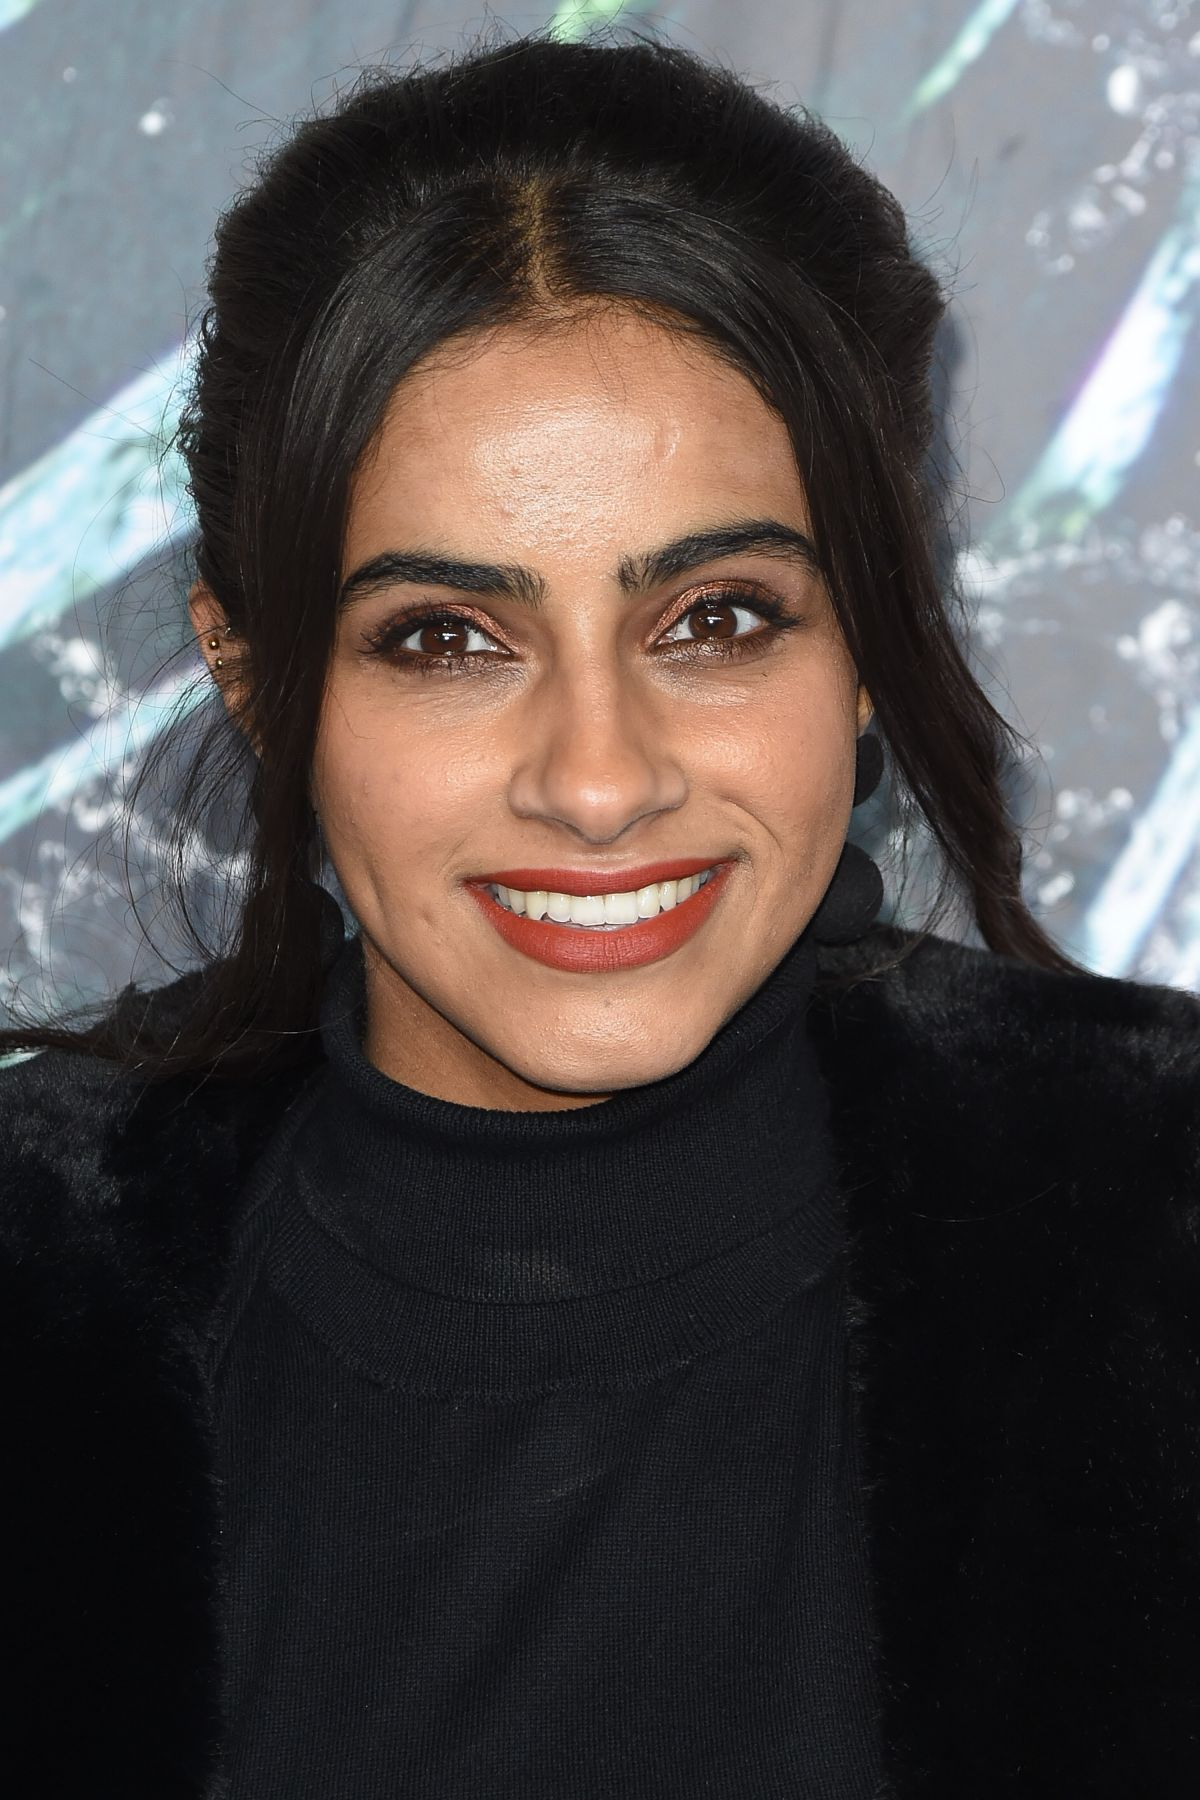 Mandip Gill Nude Photos 12